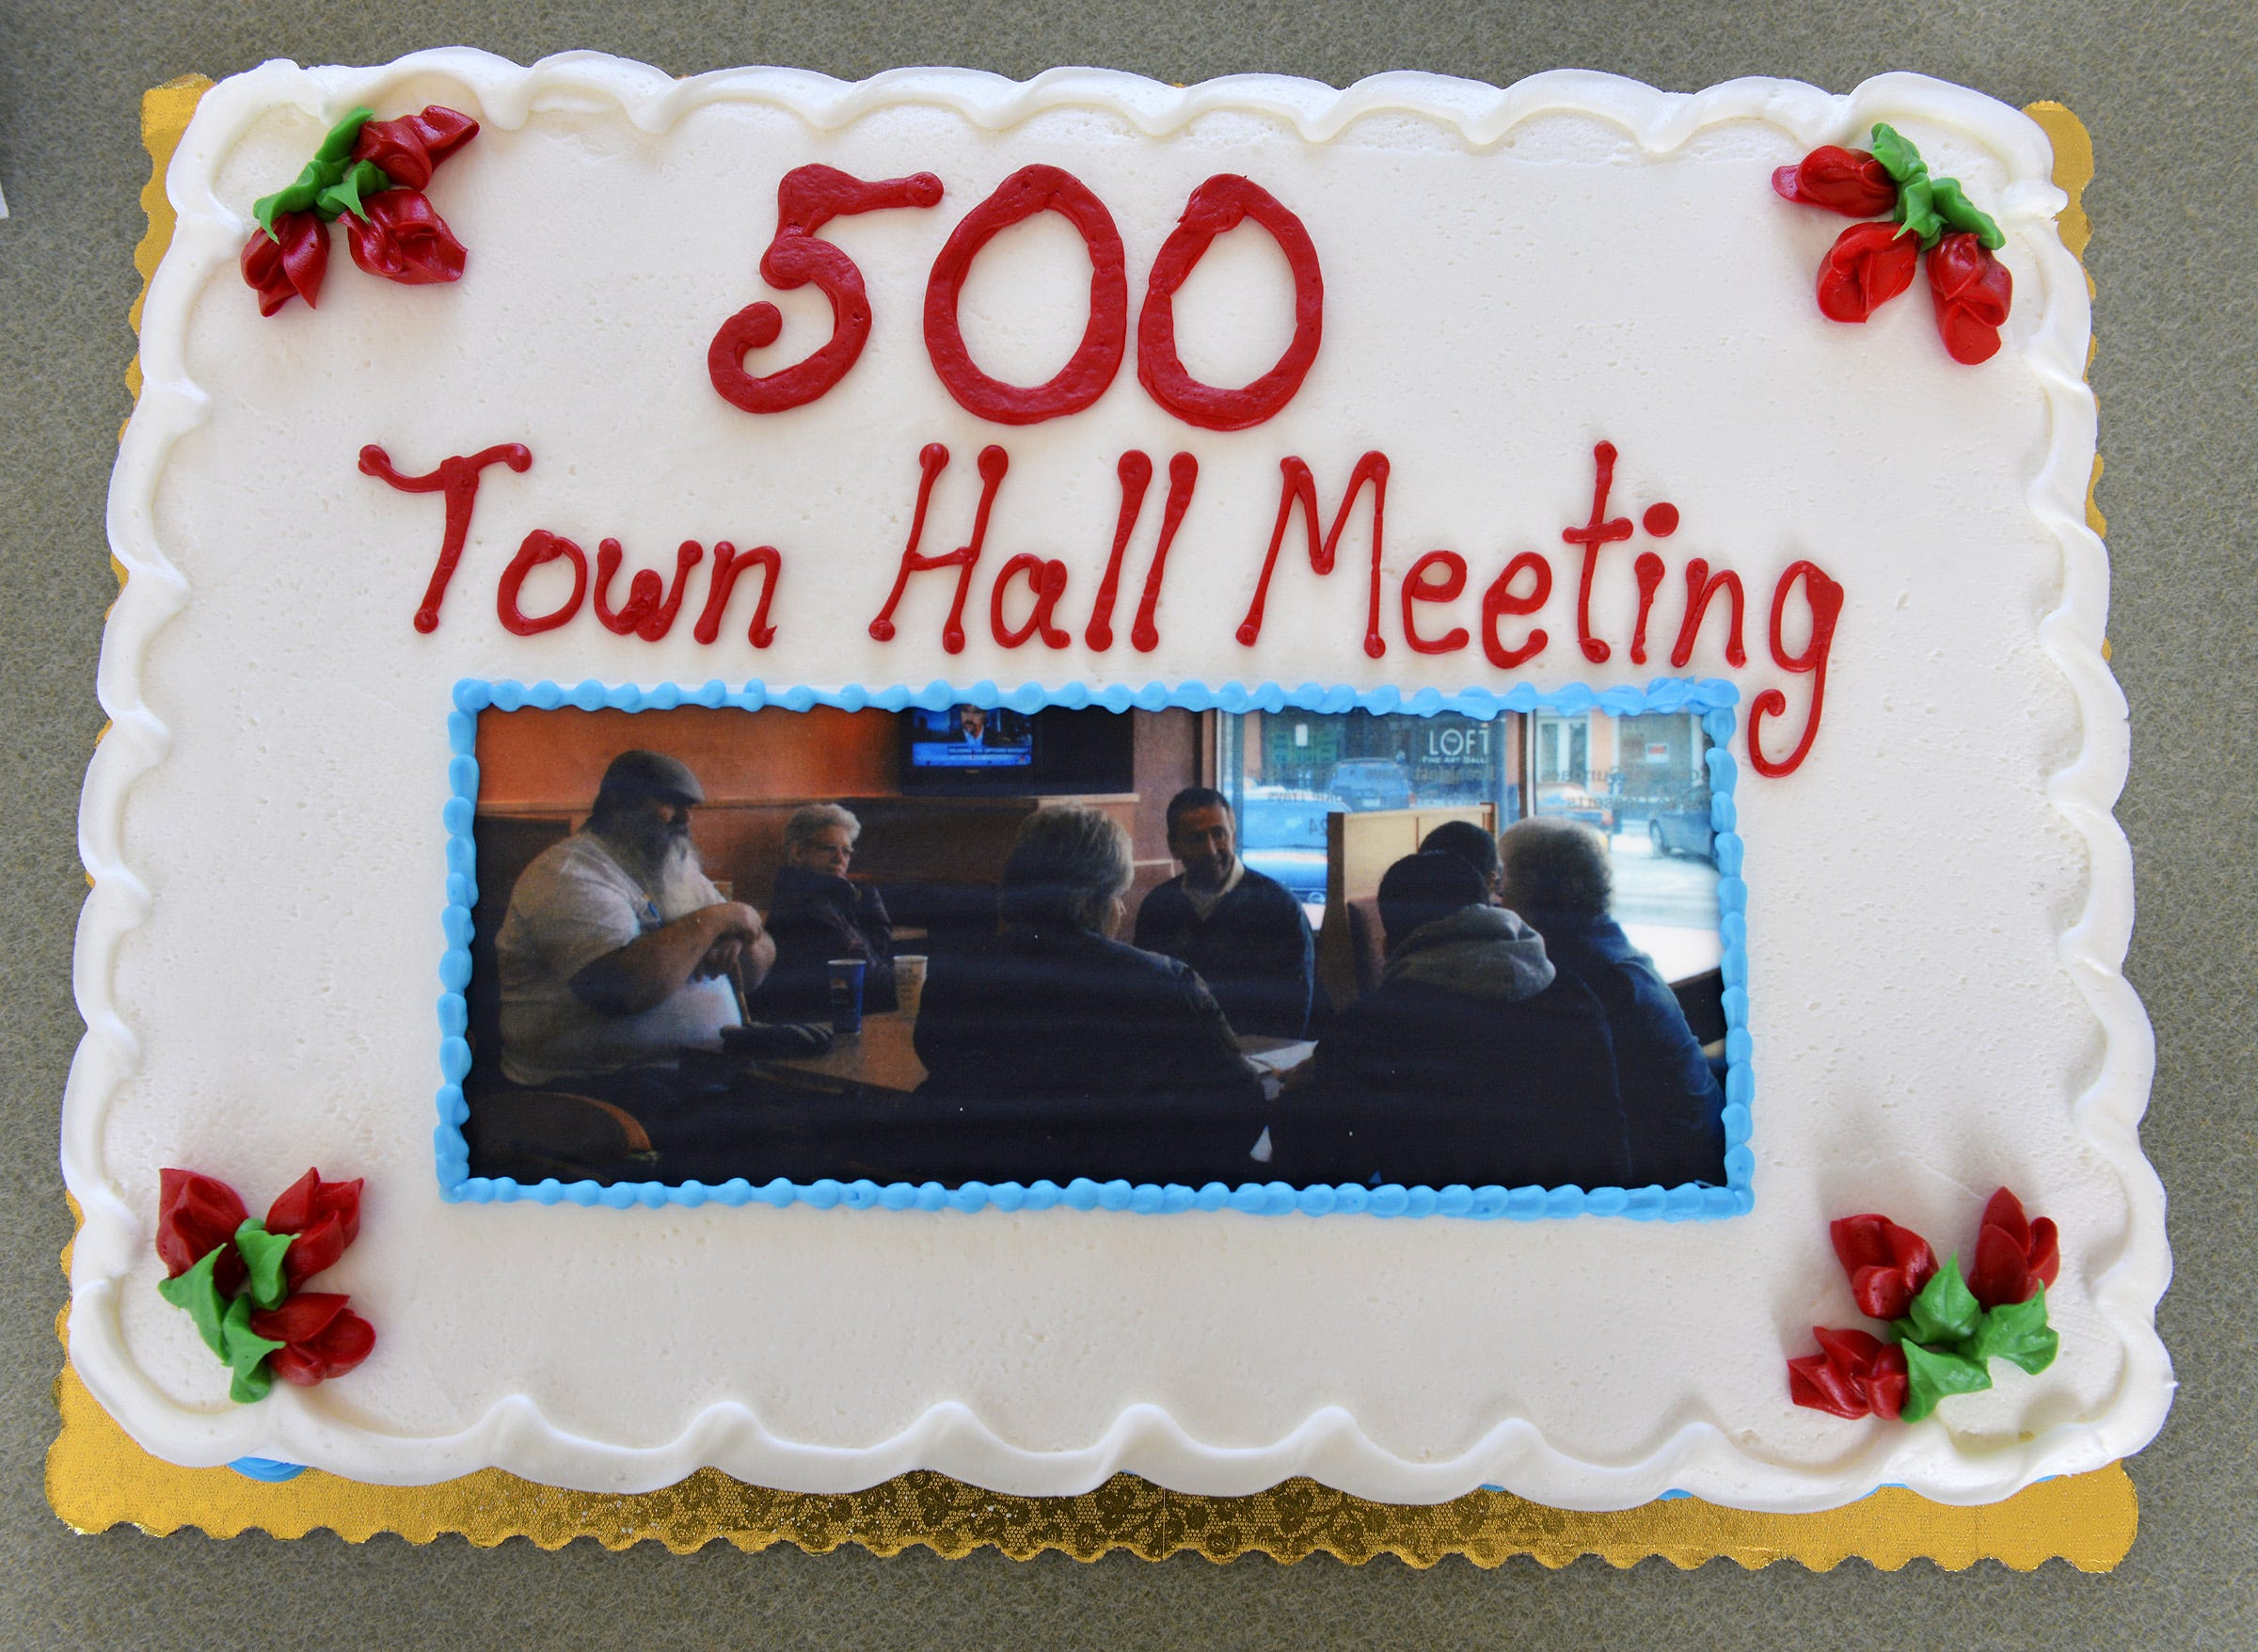 A cake commemorates the 500th town hall meeting with St. Cloud Mayor Dave Kleis in 2015 .